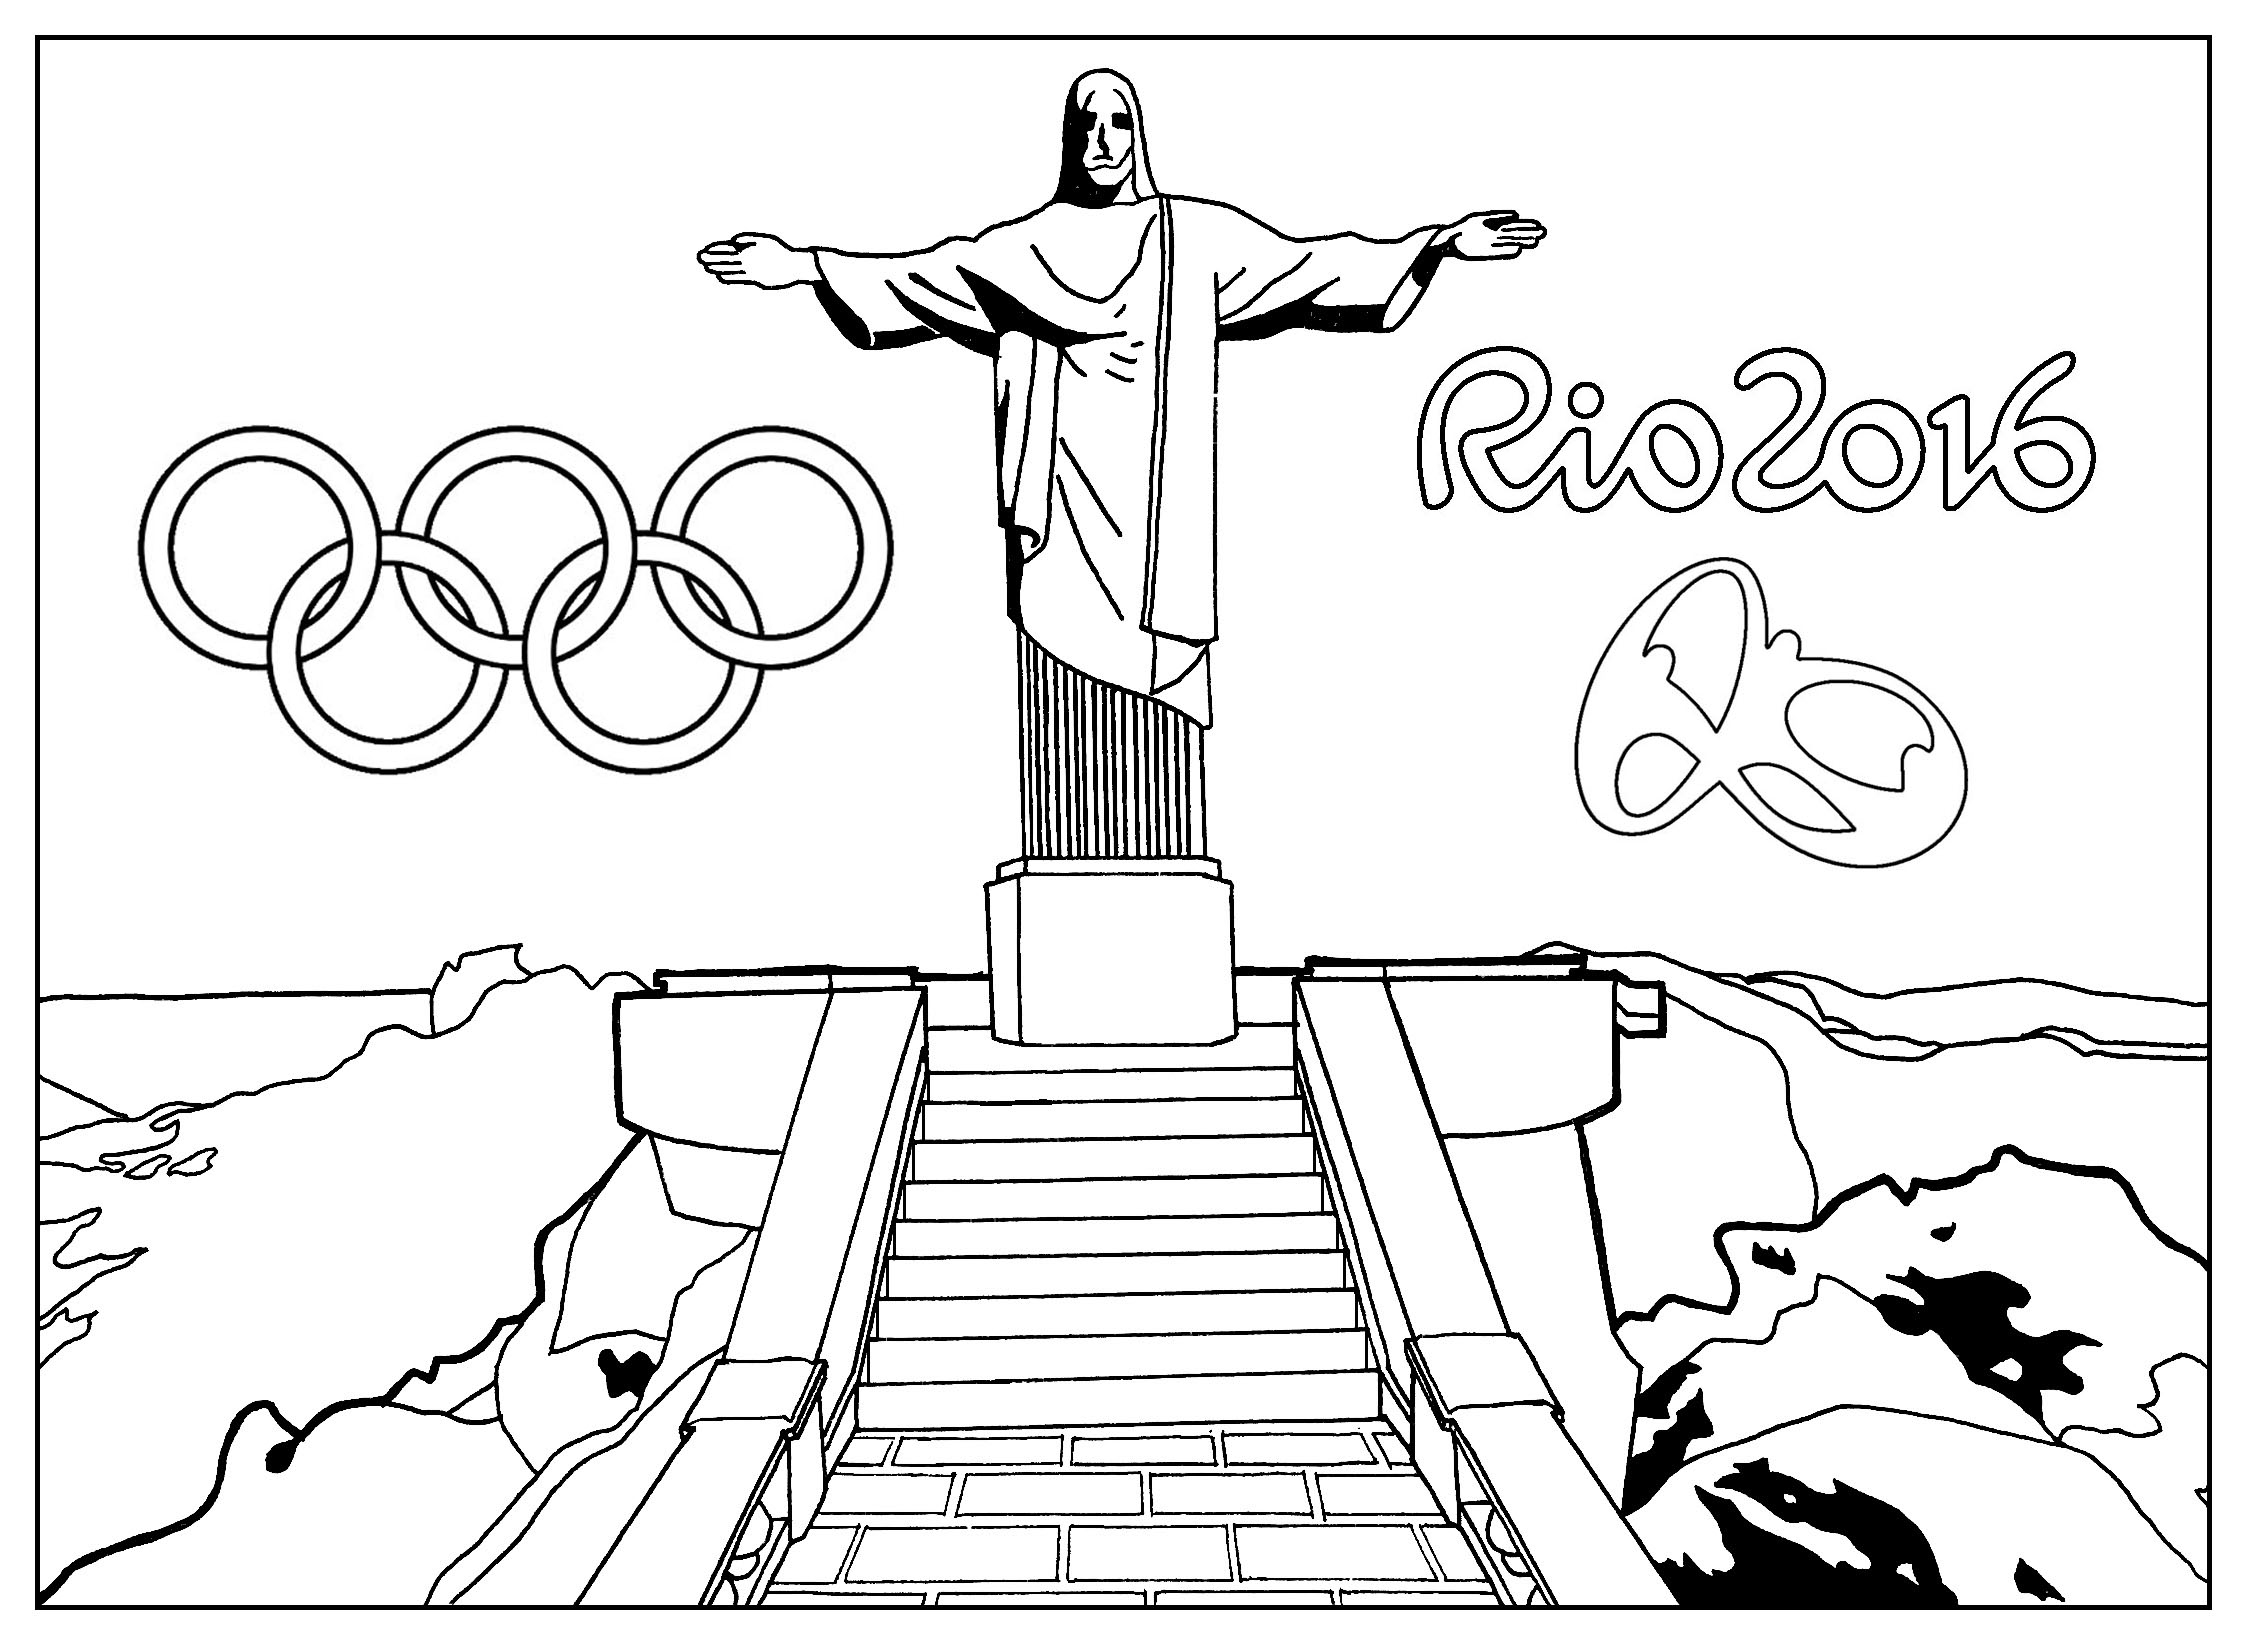 Rio 2016 Olympic Games Christ the Redeemer Statue Olympic & Sport Collection Of Special Olympics Coloring Pages Inspirational Olympic torch Coloring Download